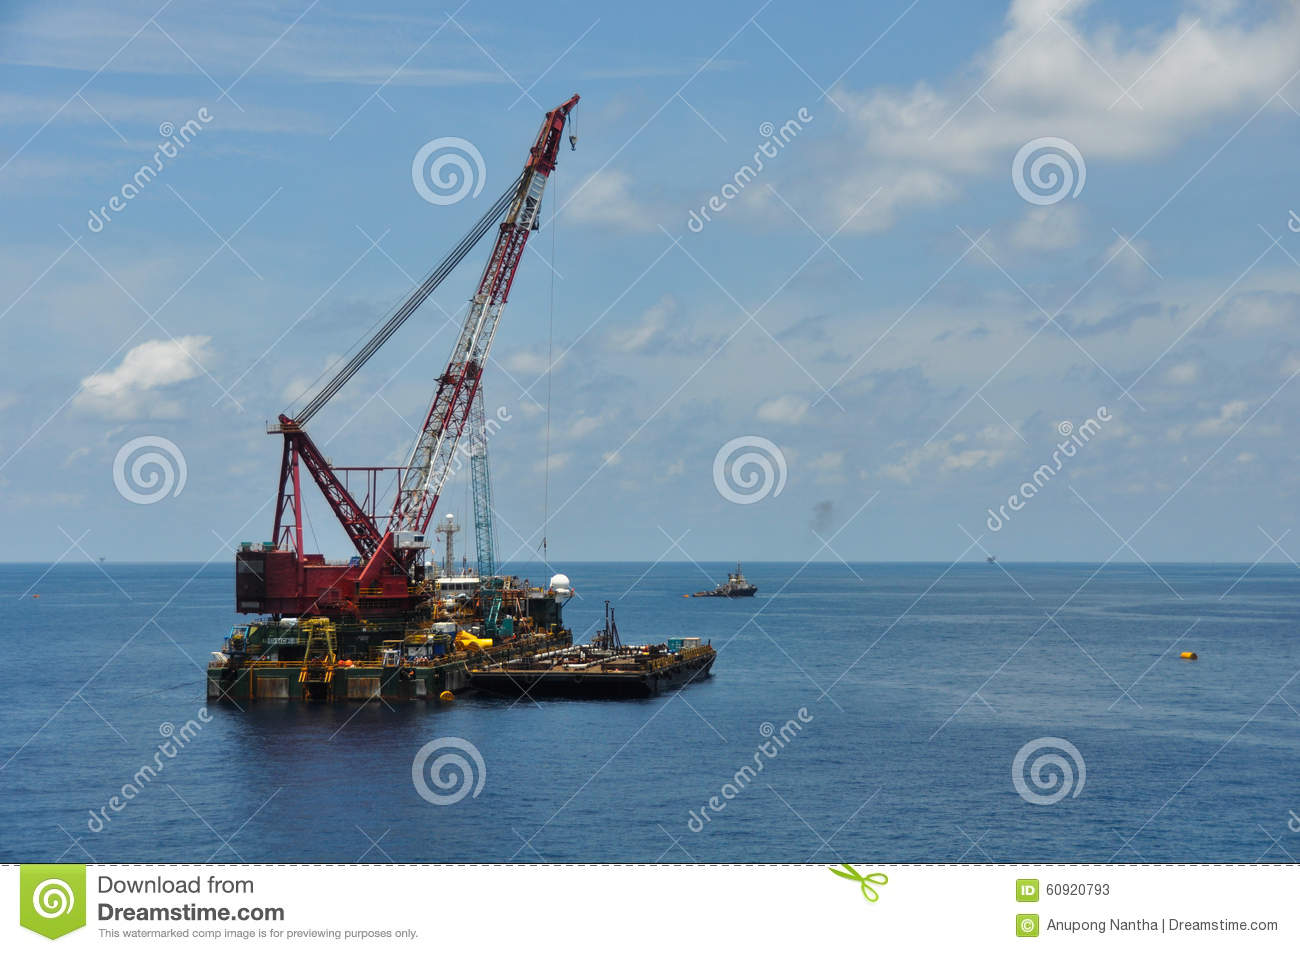 Crane Barge Lifting Heavy Cargo Or Heavy Lift In Offshore Oil And.